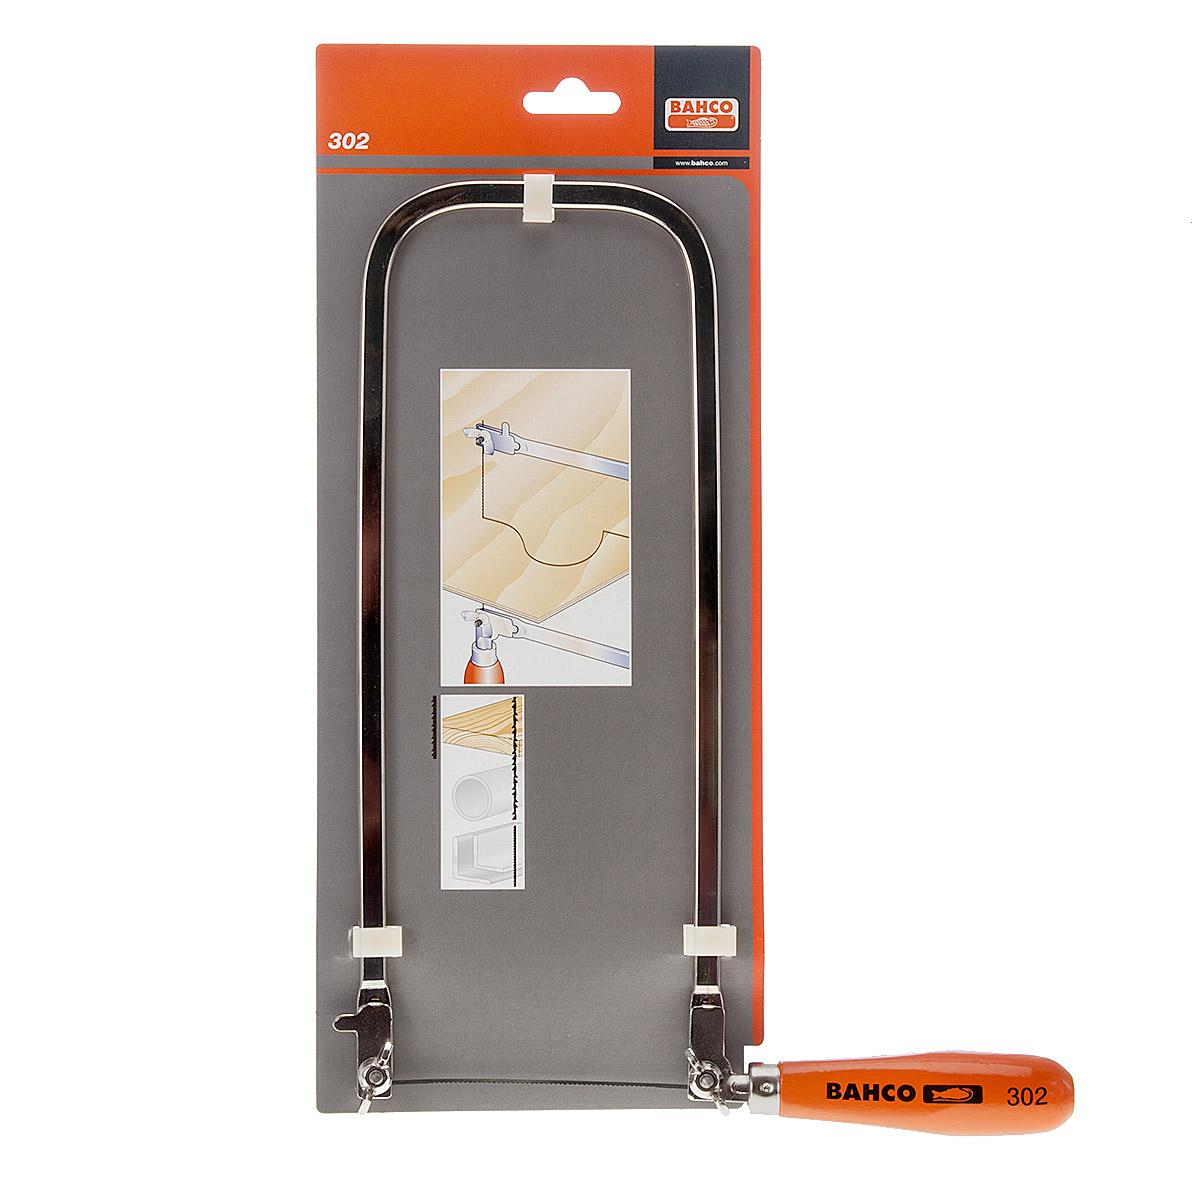 Bahco 302 Fretsaw lowest price